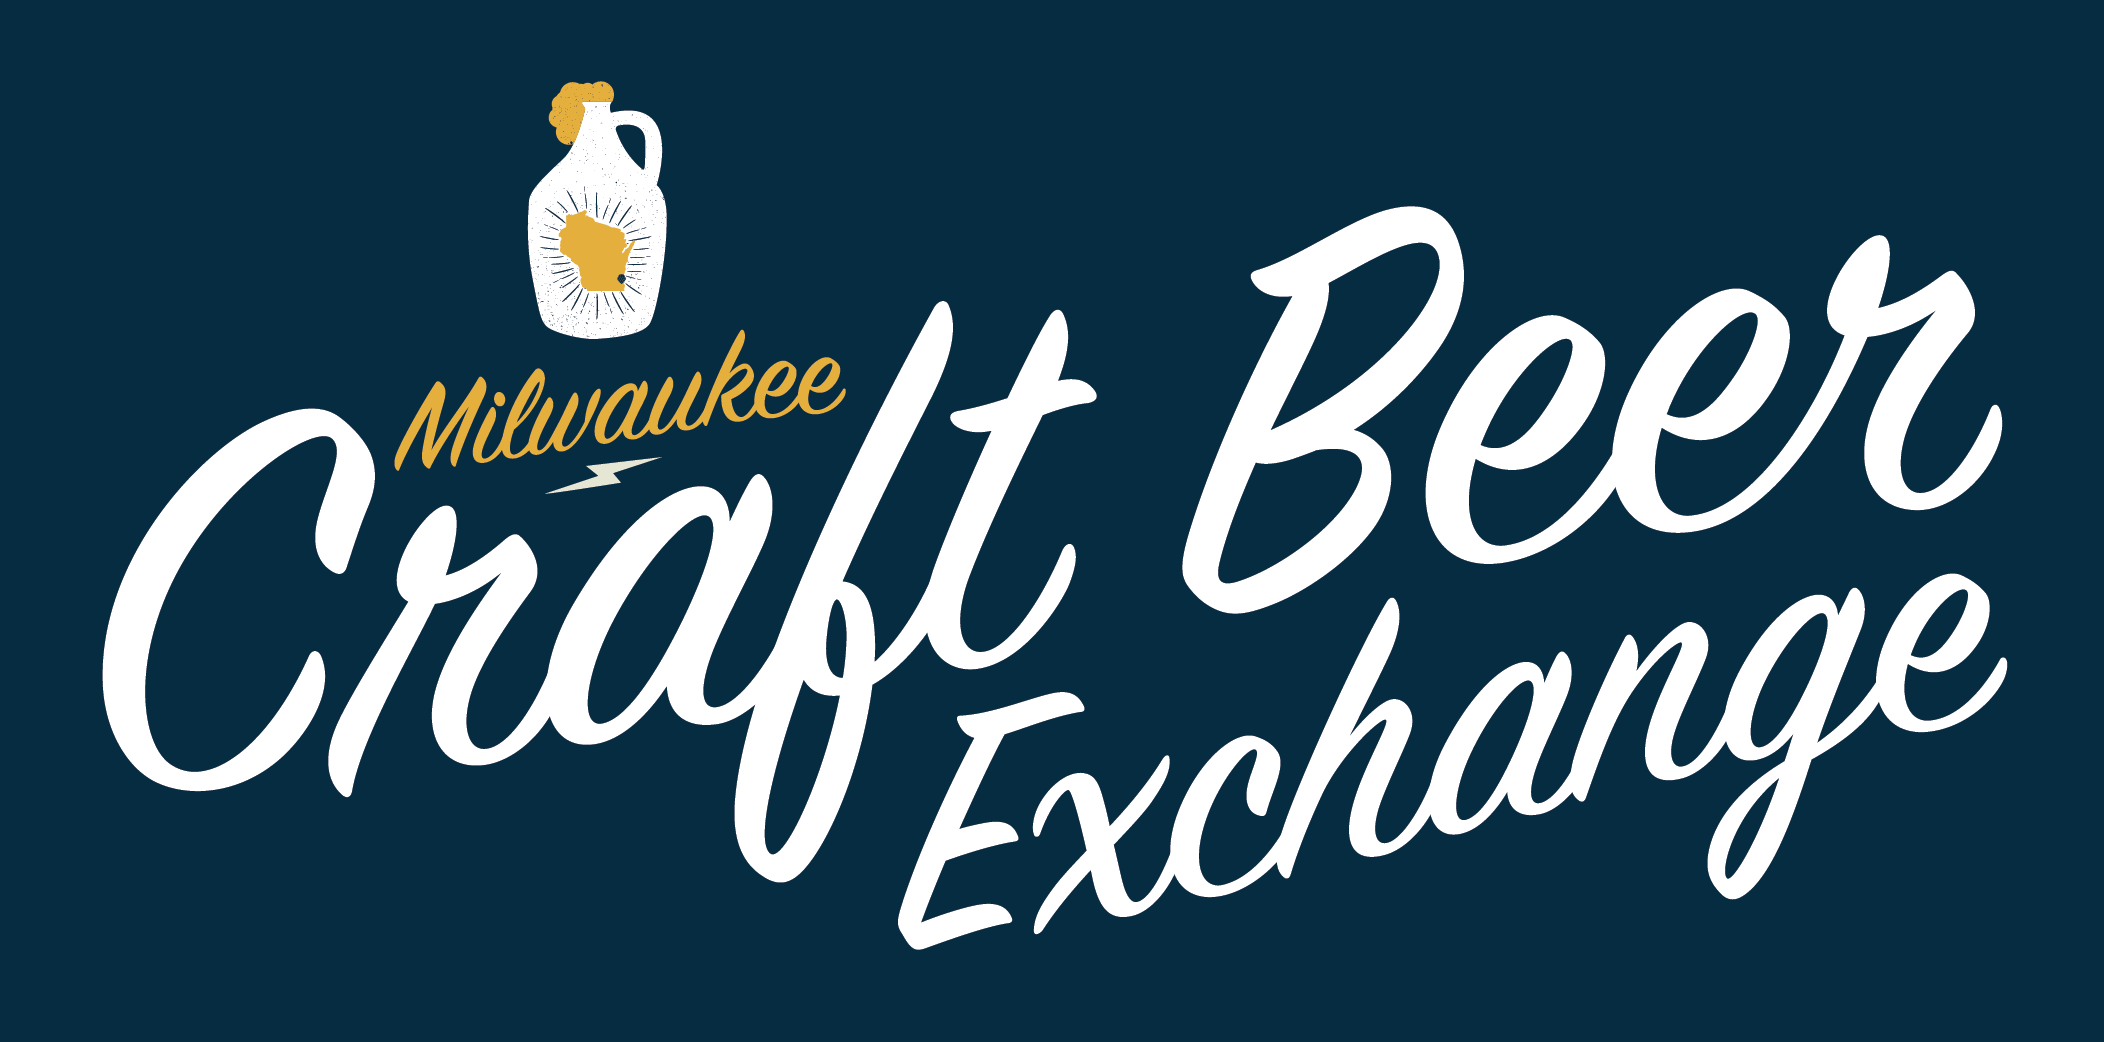 Milwaukee Craft Beer Exchange